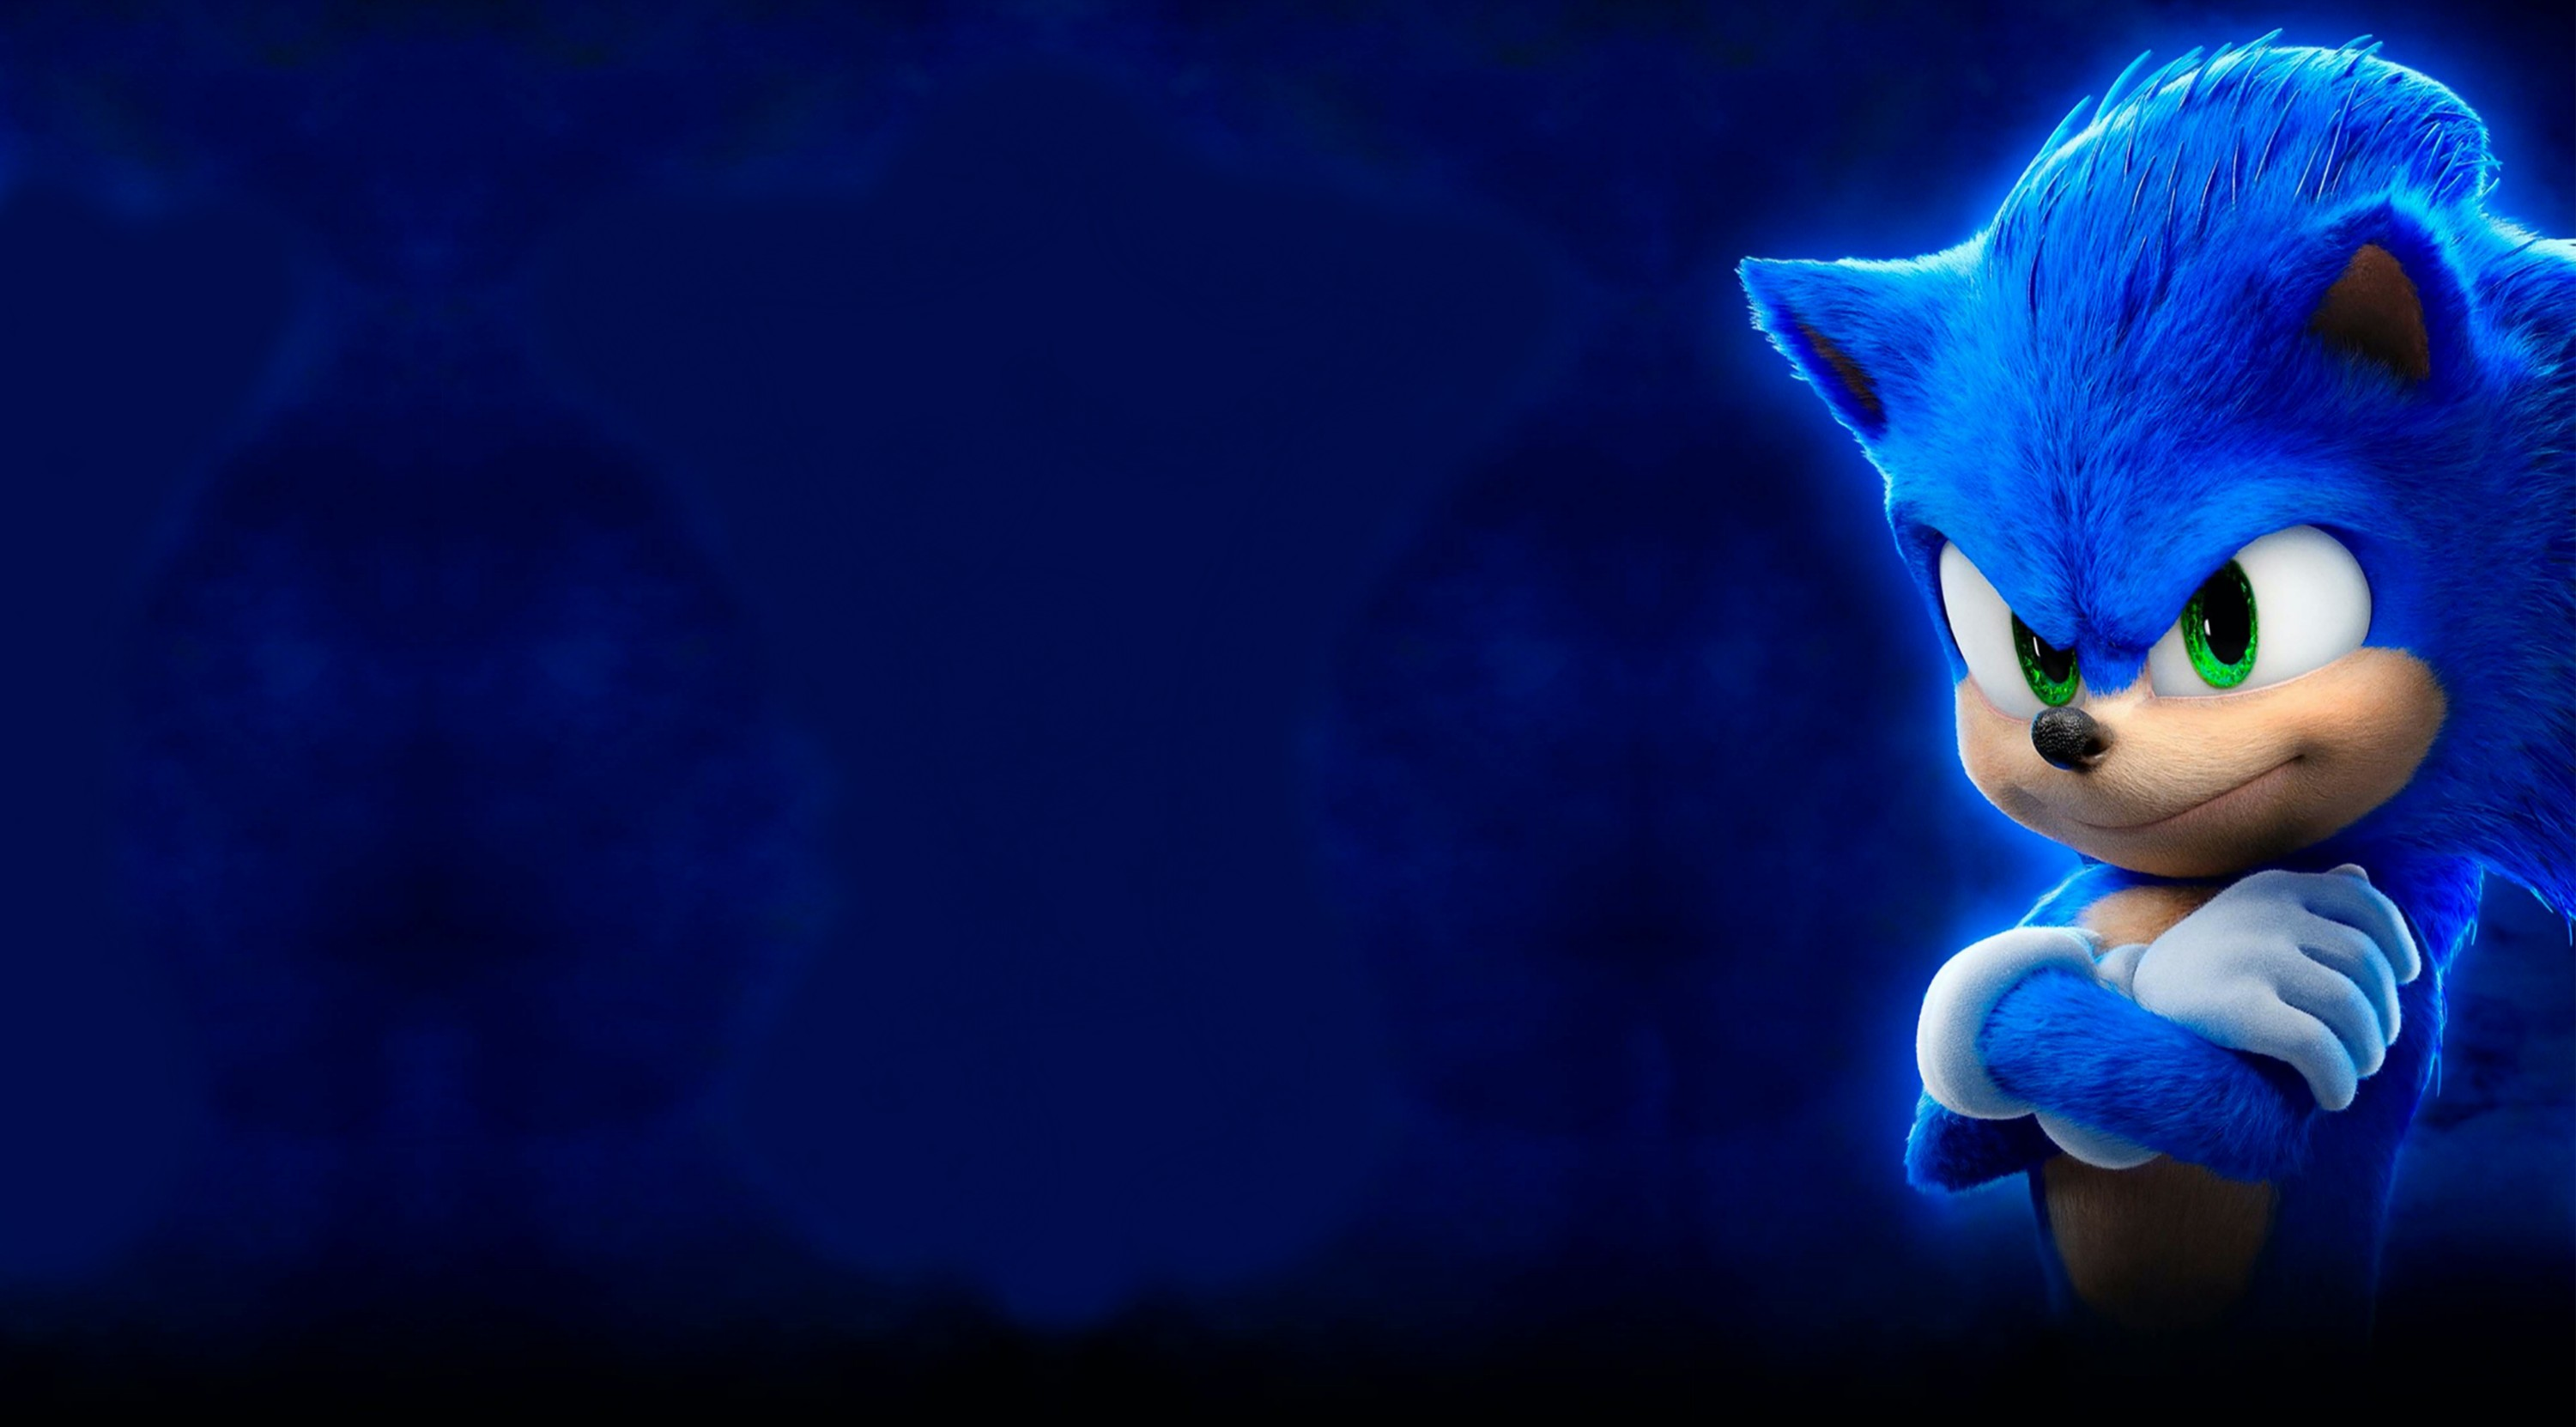 sonic the hedgehog 2020 wallpaper